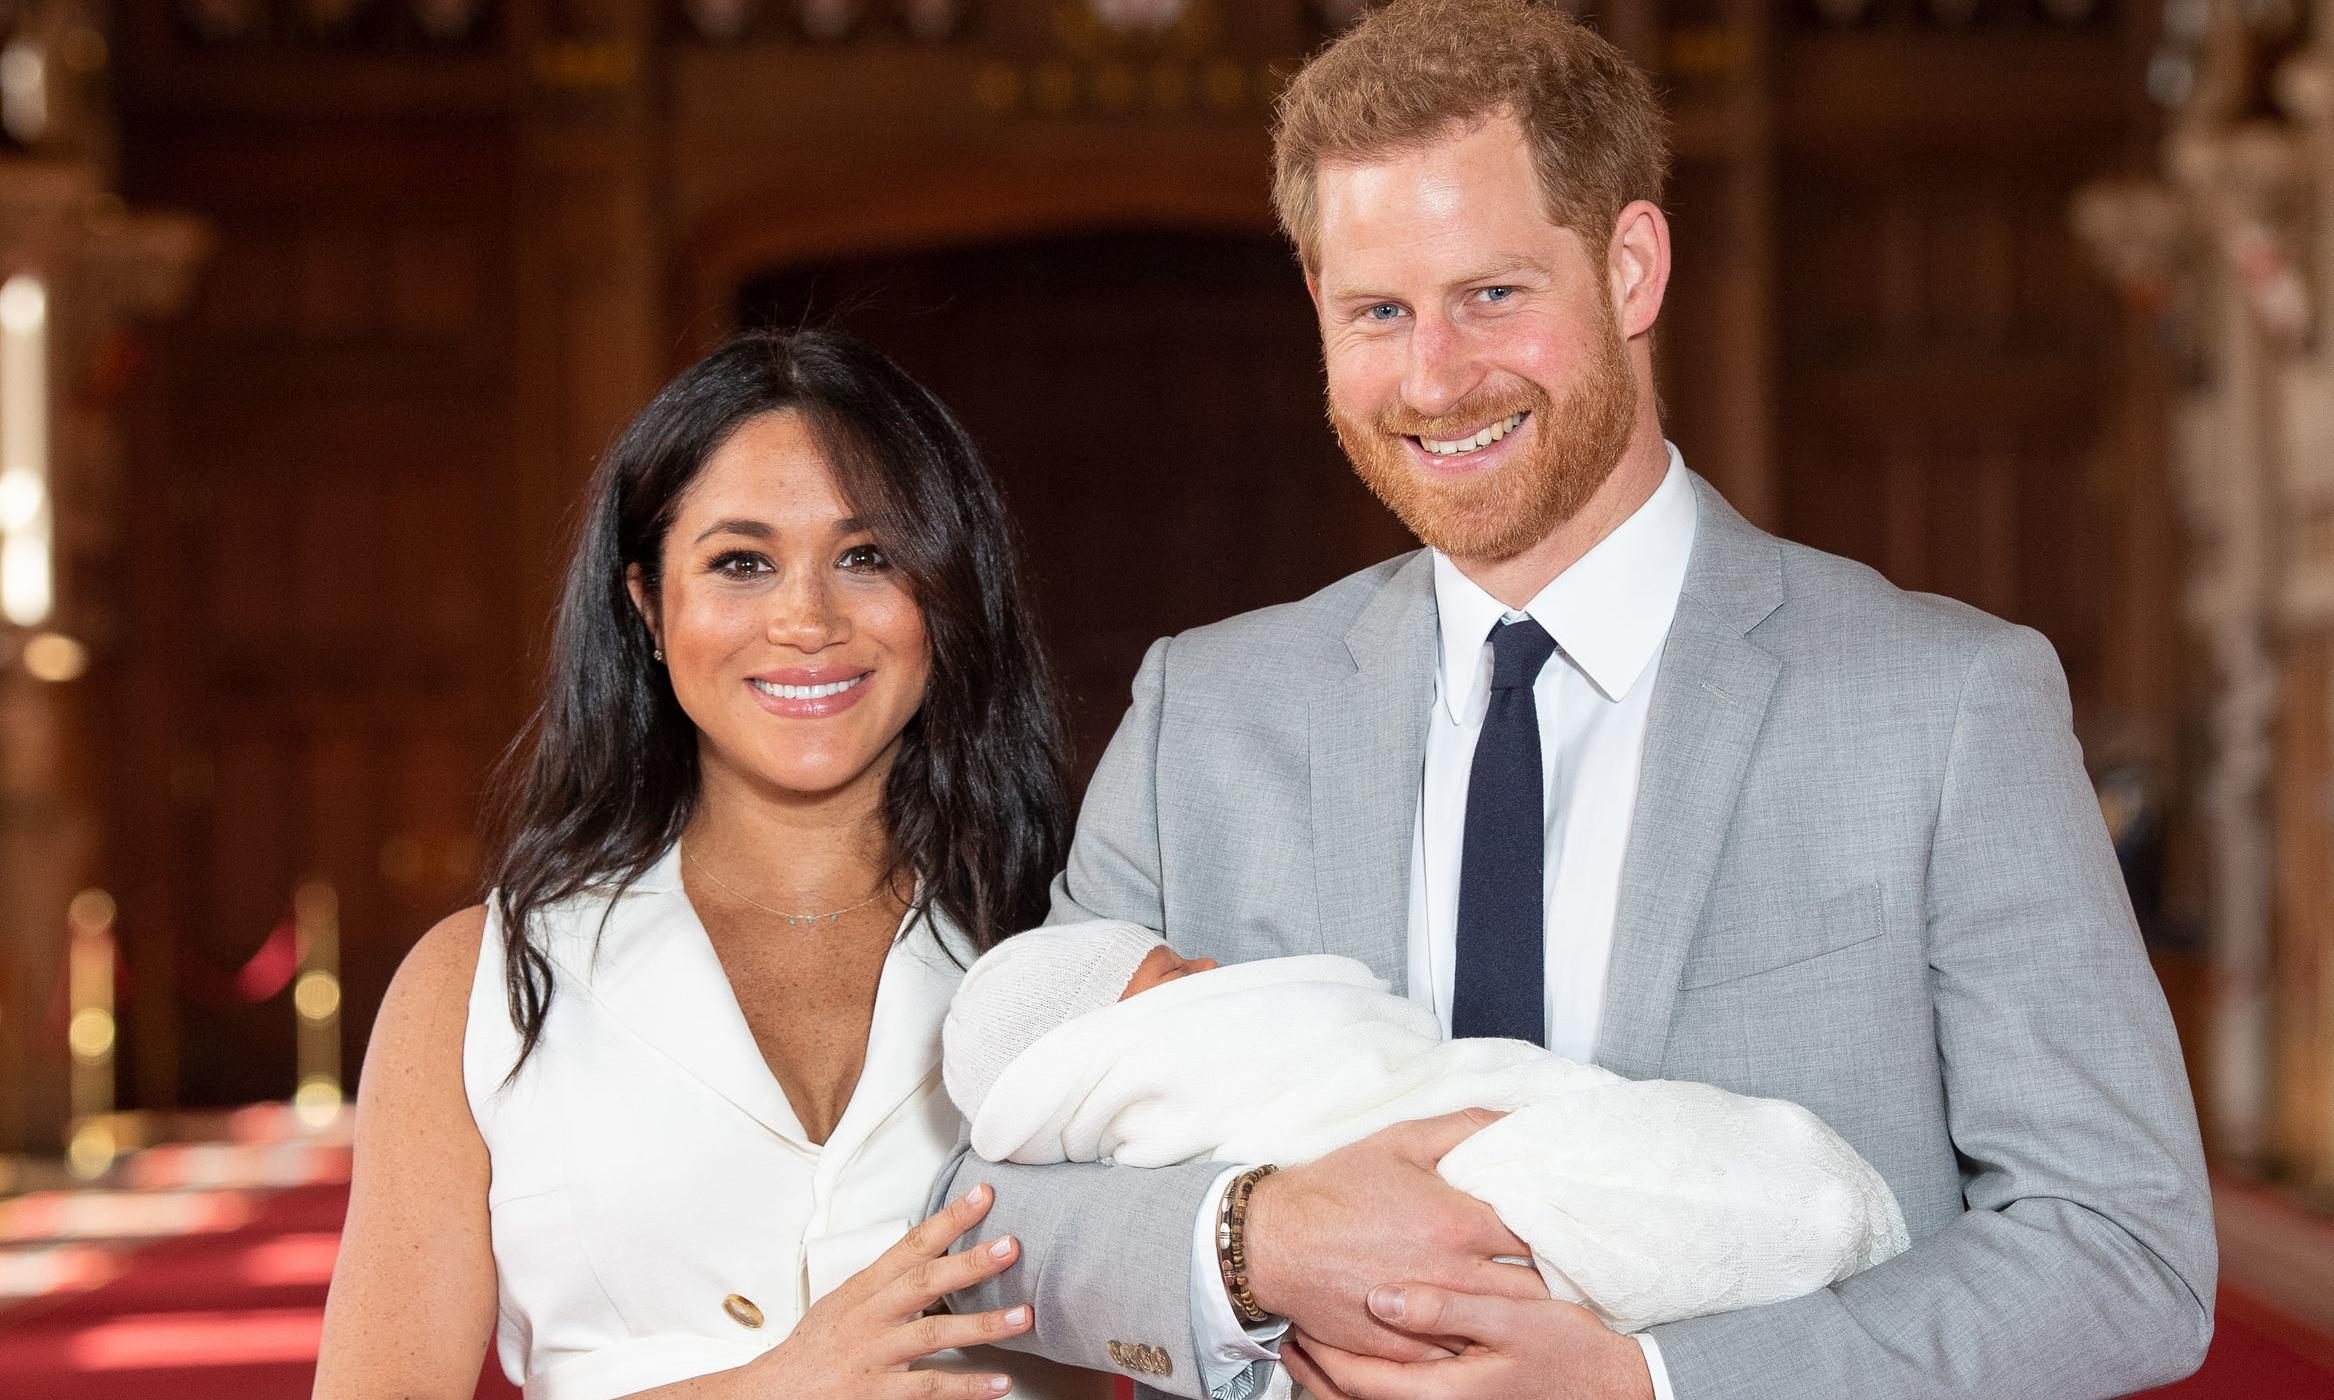 Harry and Meghan's new home cost taxpayer £2.4m